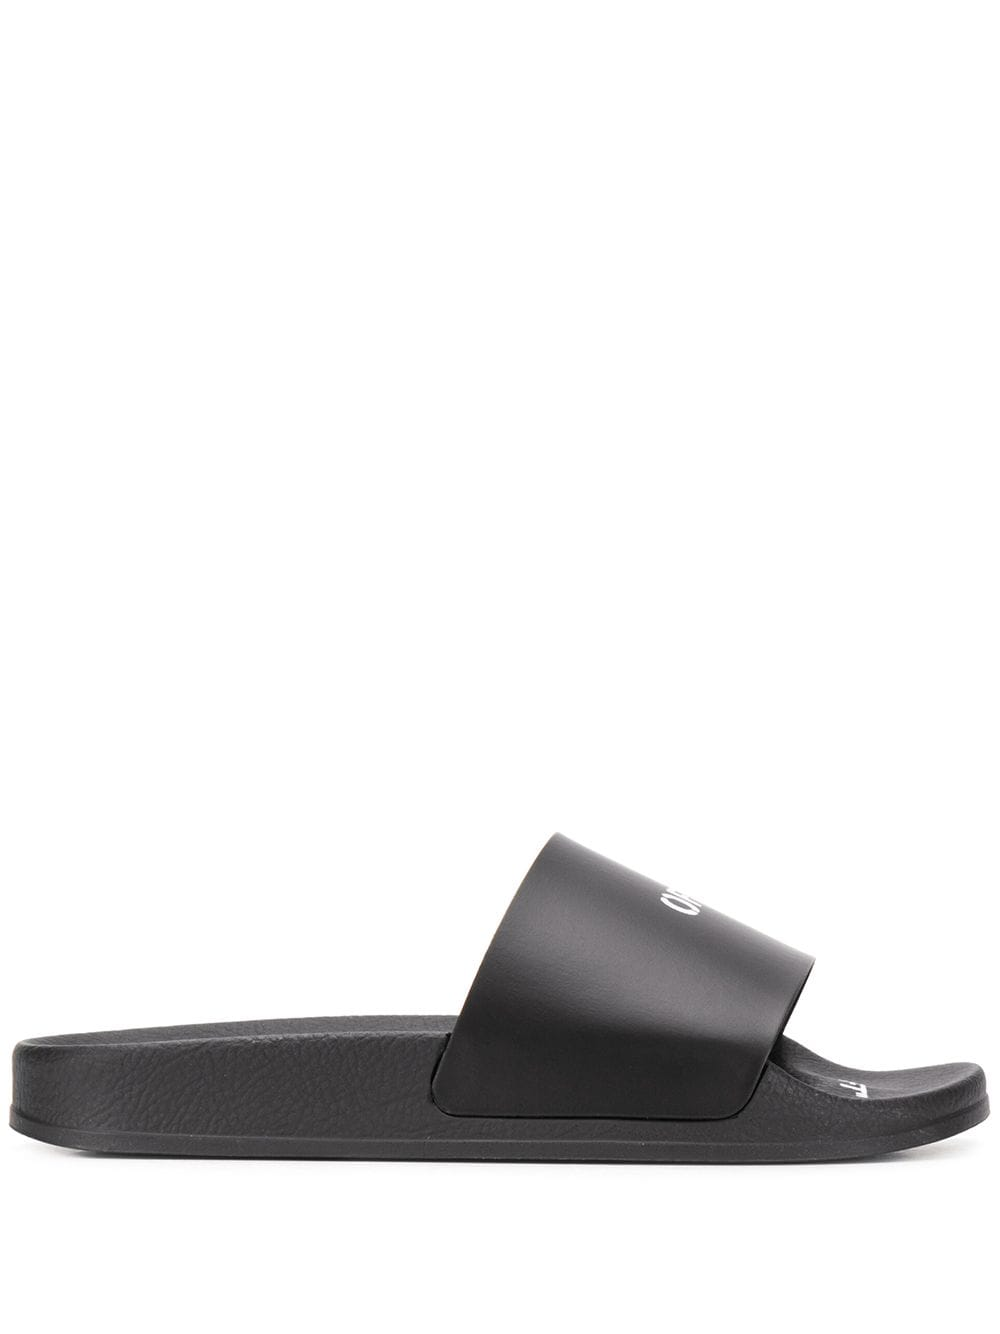 OFF-WHITE WOMEN POOL SLIDER BLACK NO COLOR